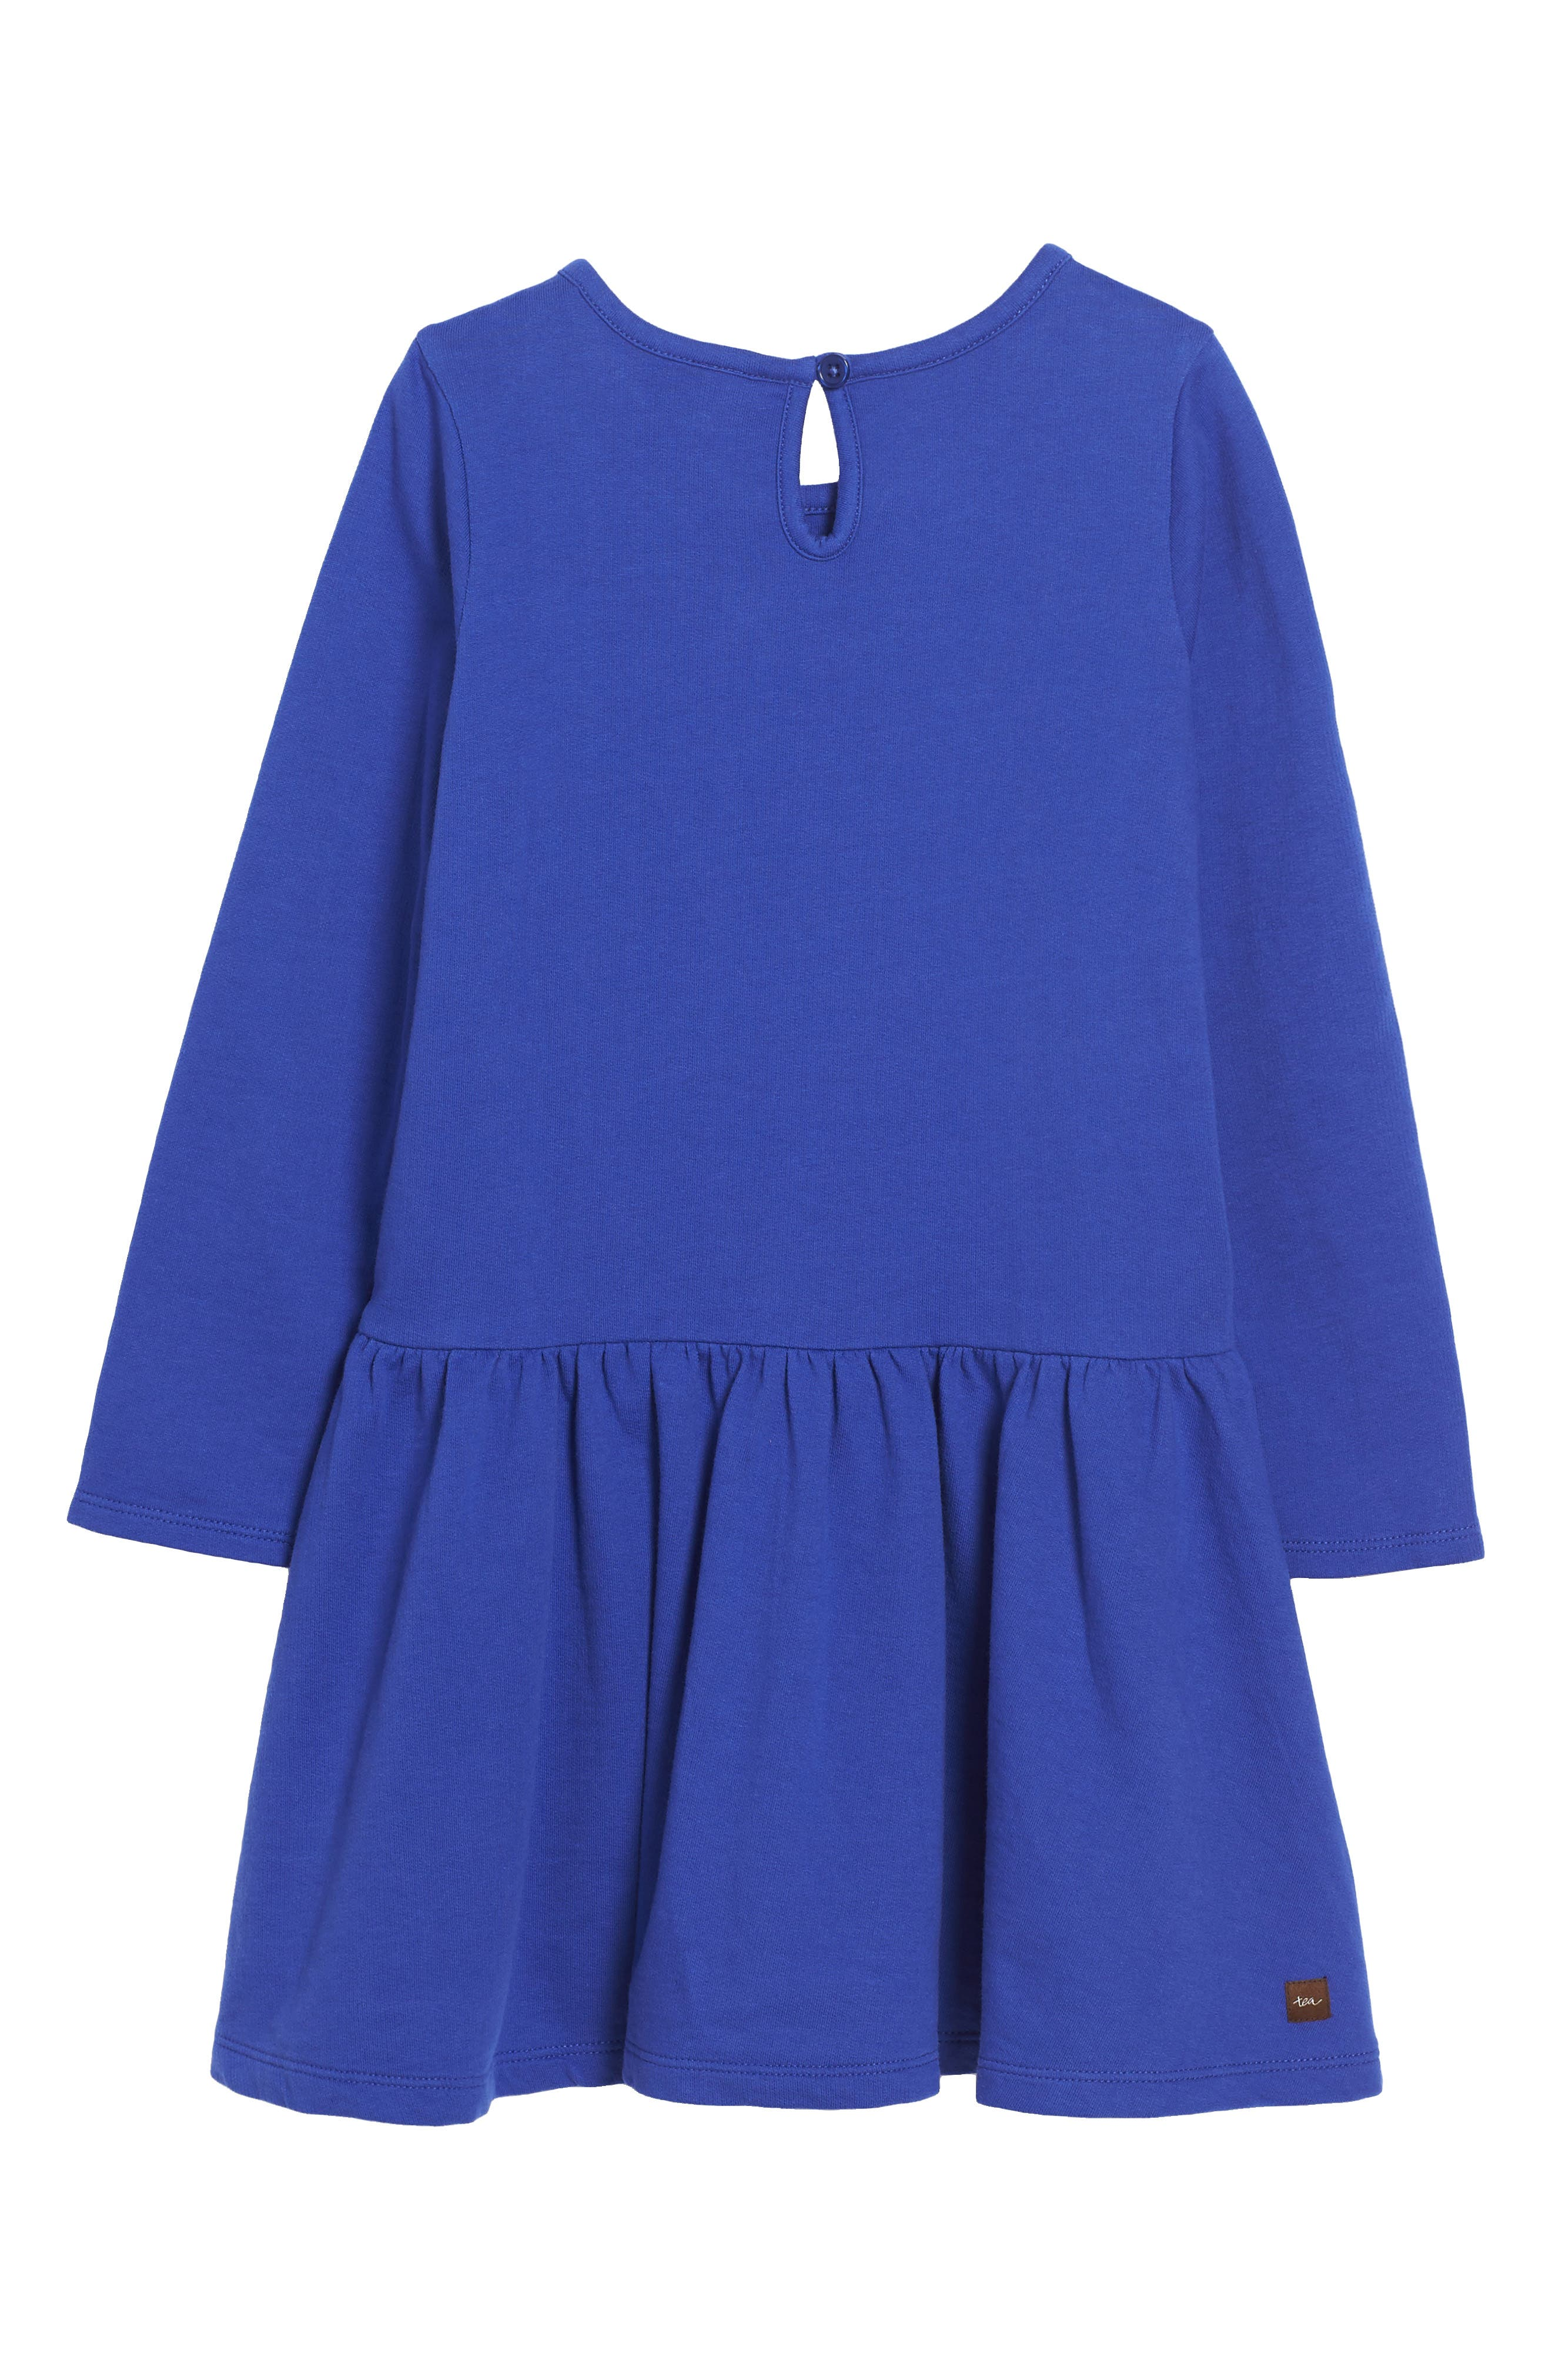 Feather & Fan Embroidered Drop Waist Dress,                             Alternate thumbnail 2, color,                             494